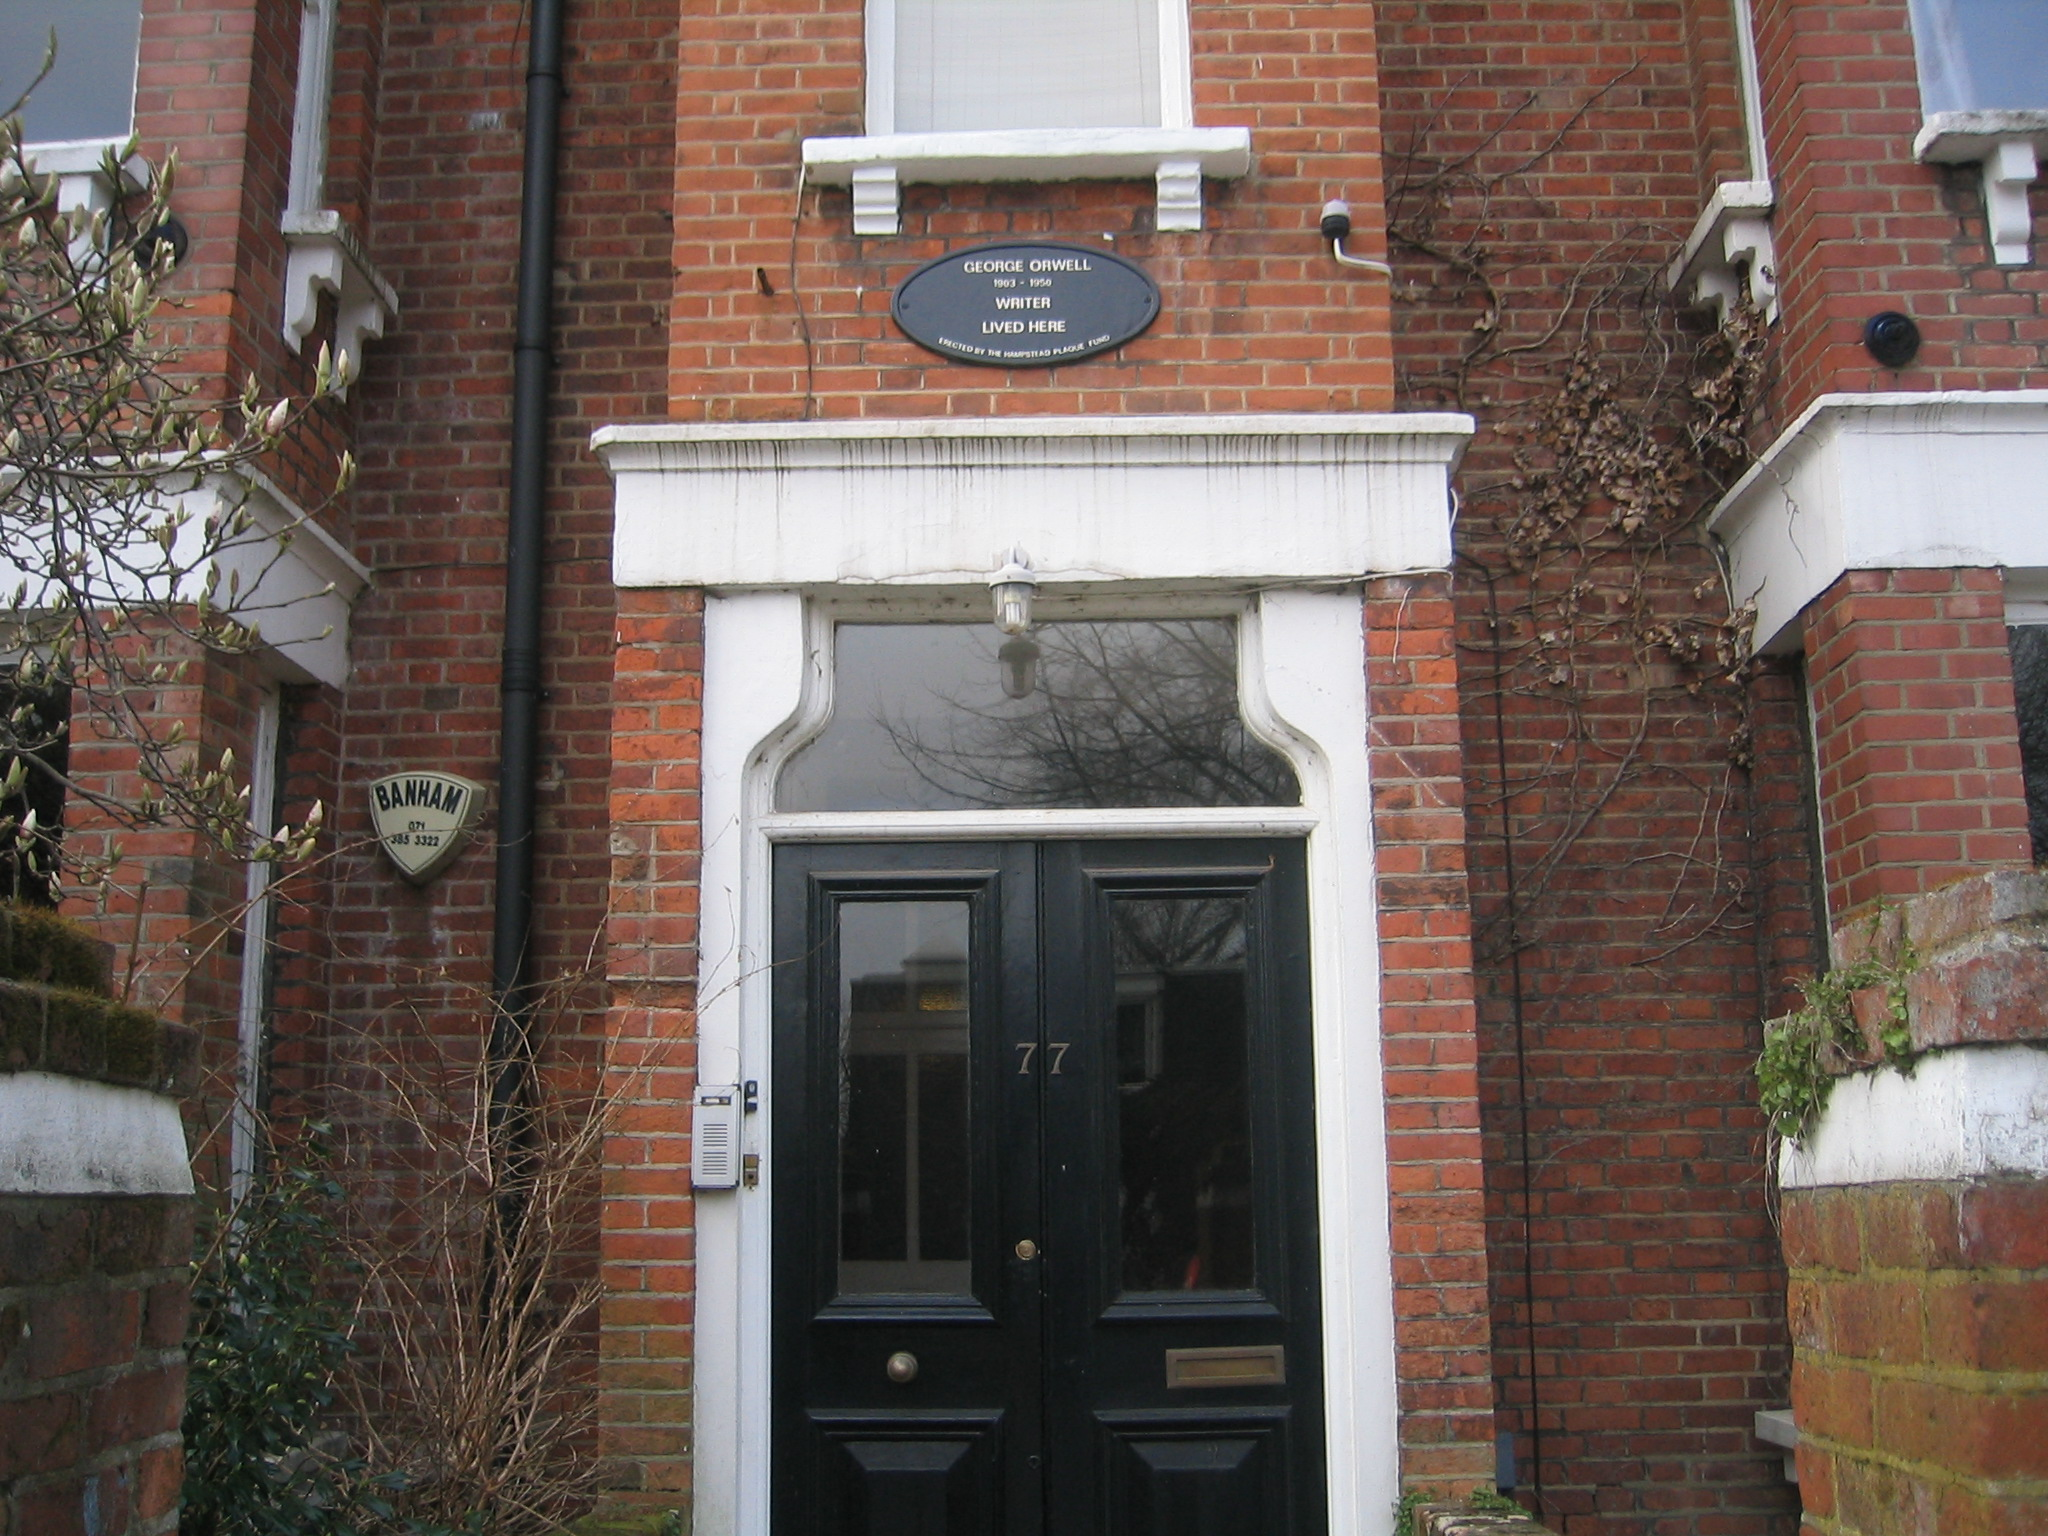 critical analysis of george orwell s essay shooting an elephant orwell s former home at 77 parliament hill hampstead